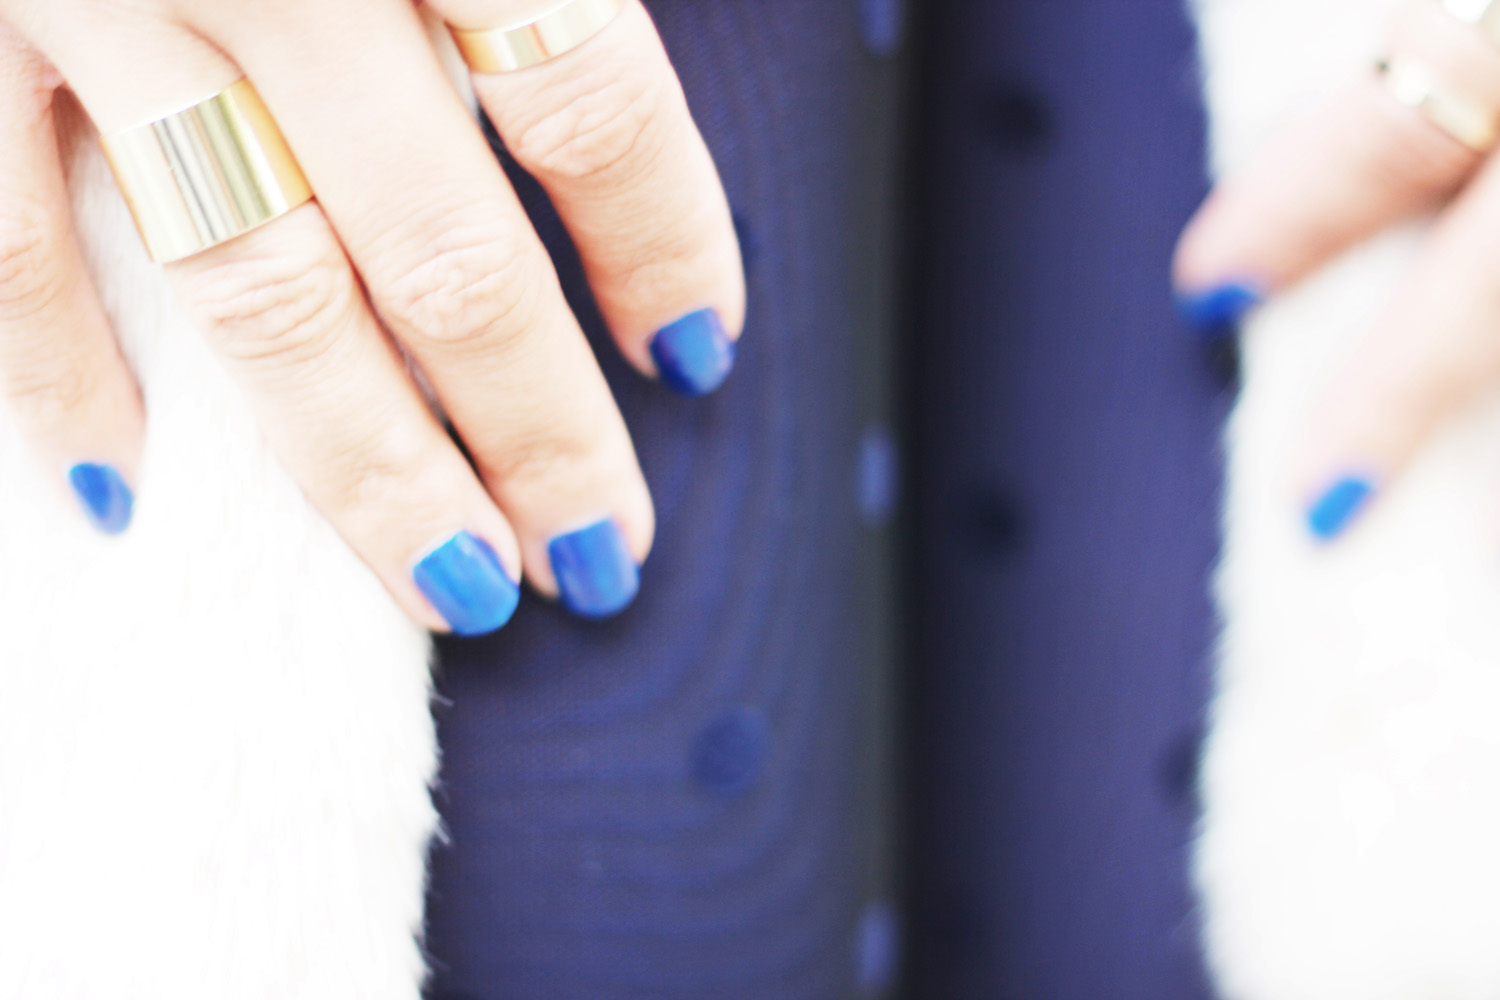 fatimayarie-calzedonia-bluedots-tights-bluenails-rings-styleblog-img_1004